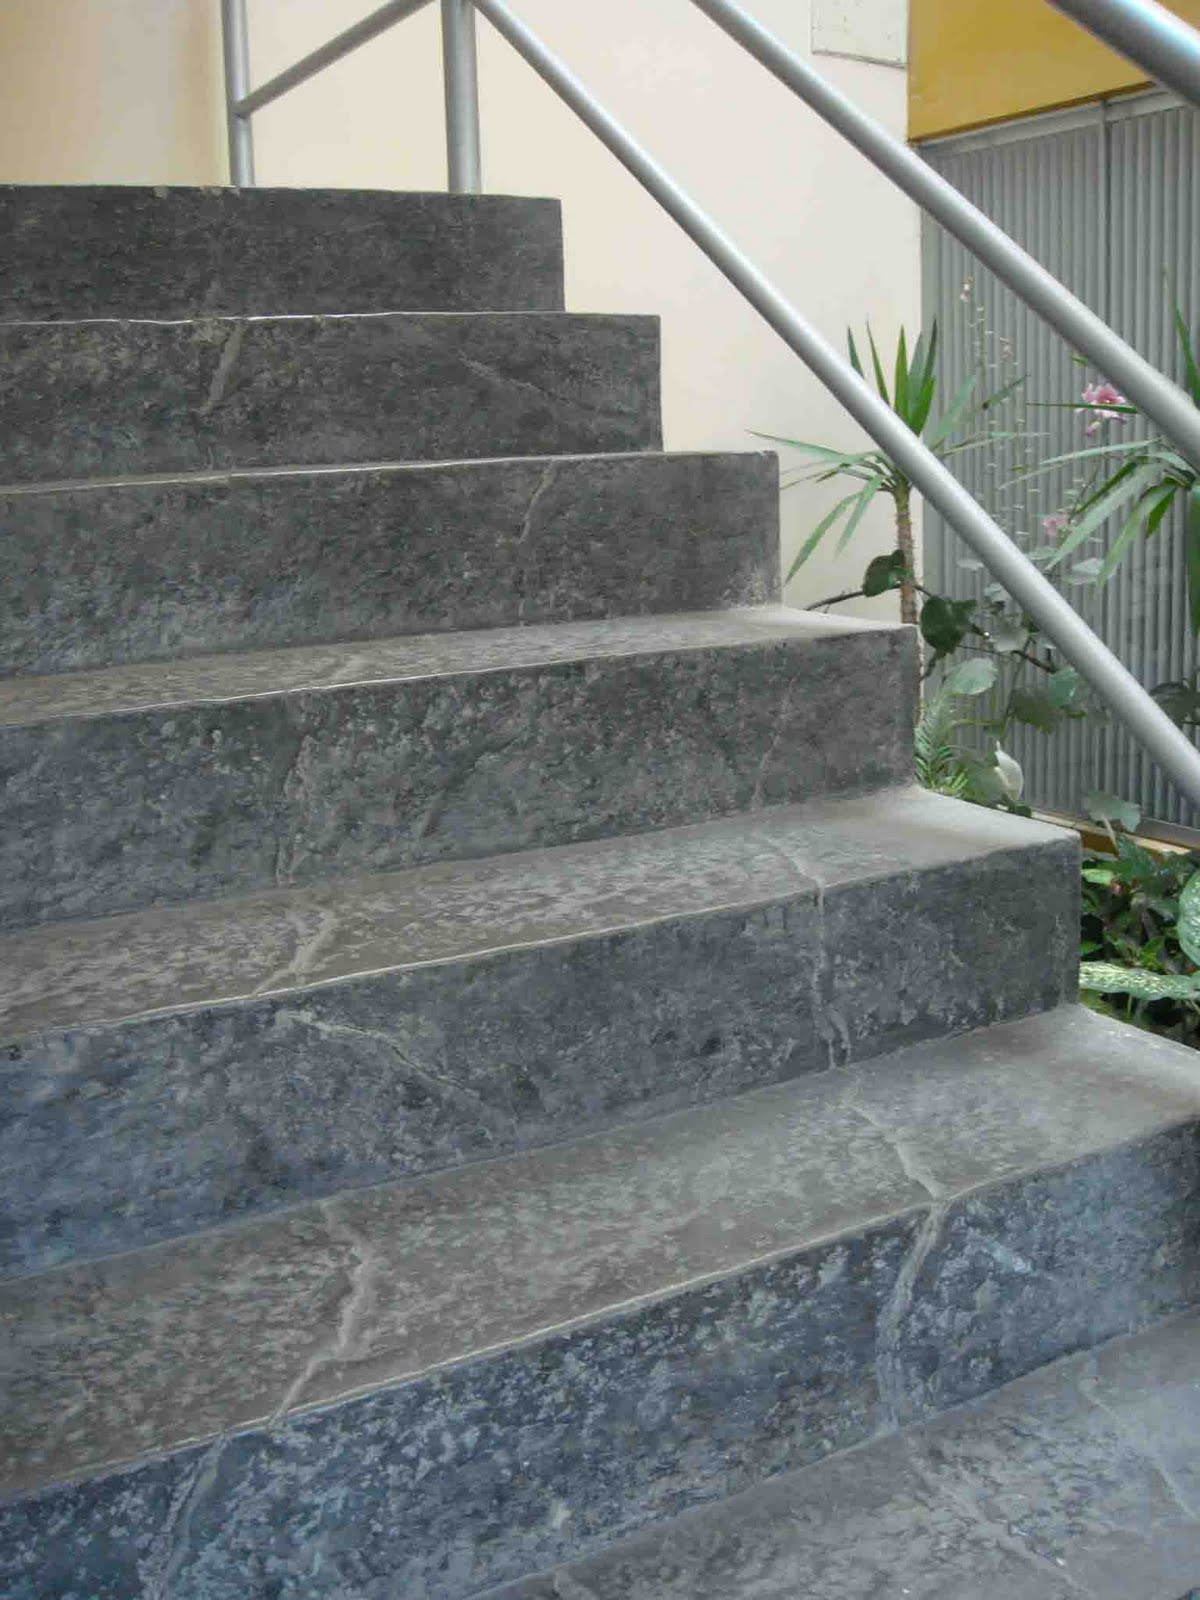 Increte Per Systems Escalera Con Concreto Decorativo